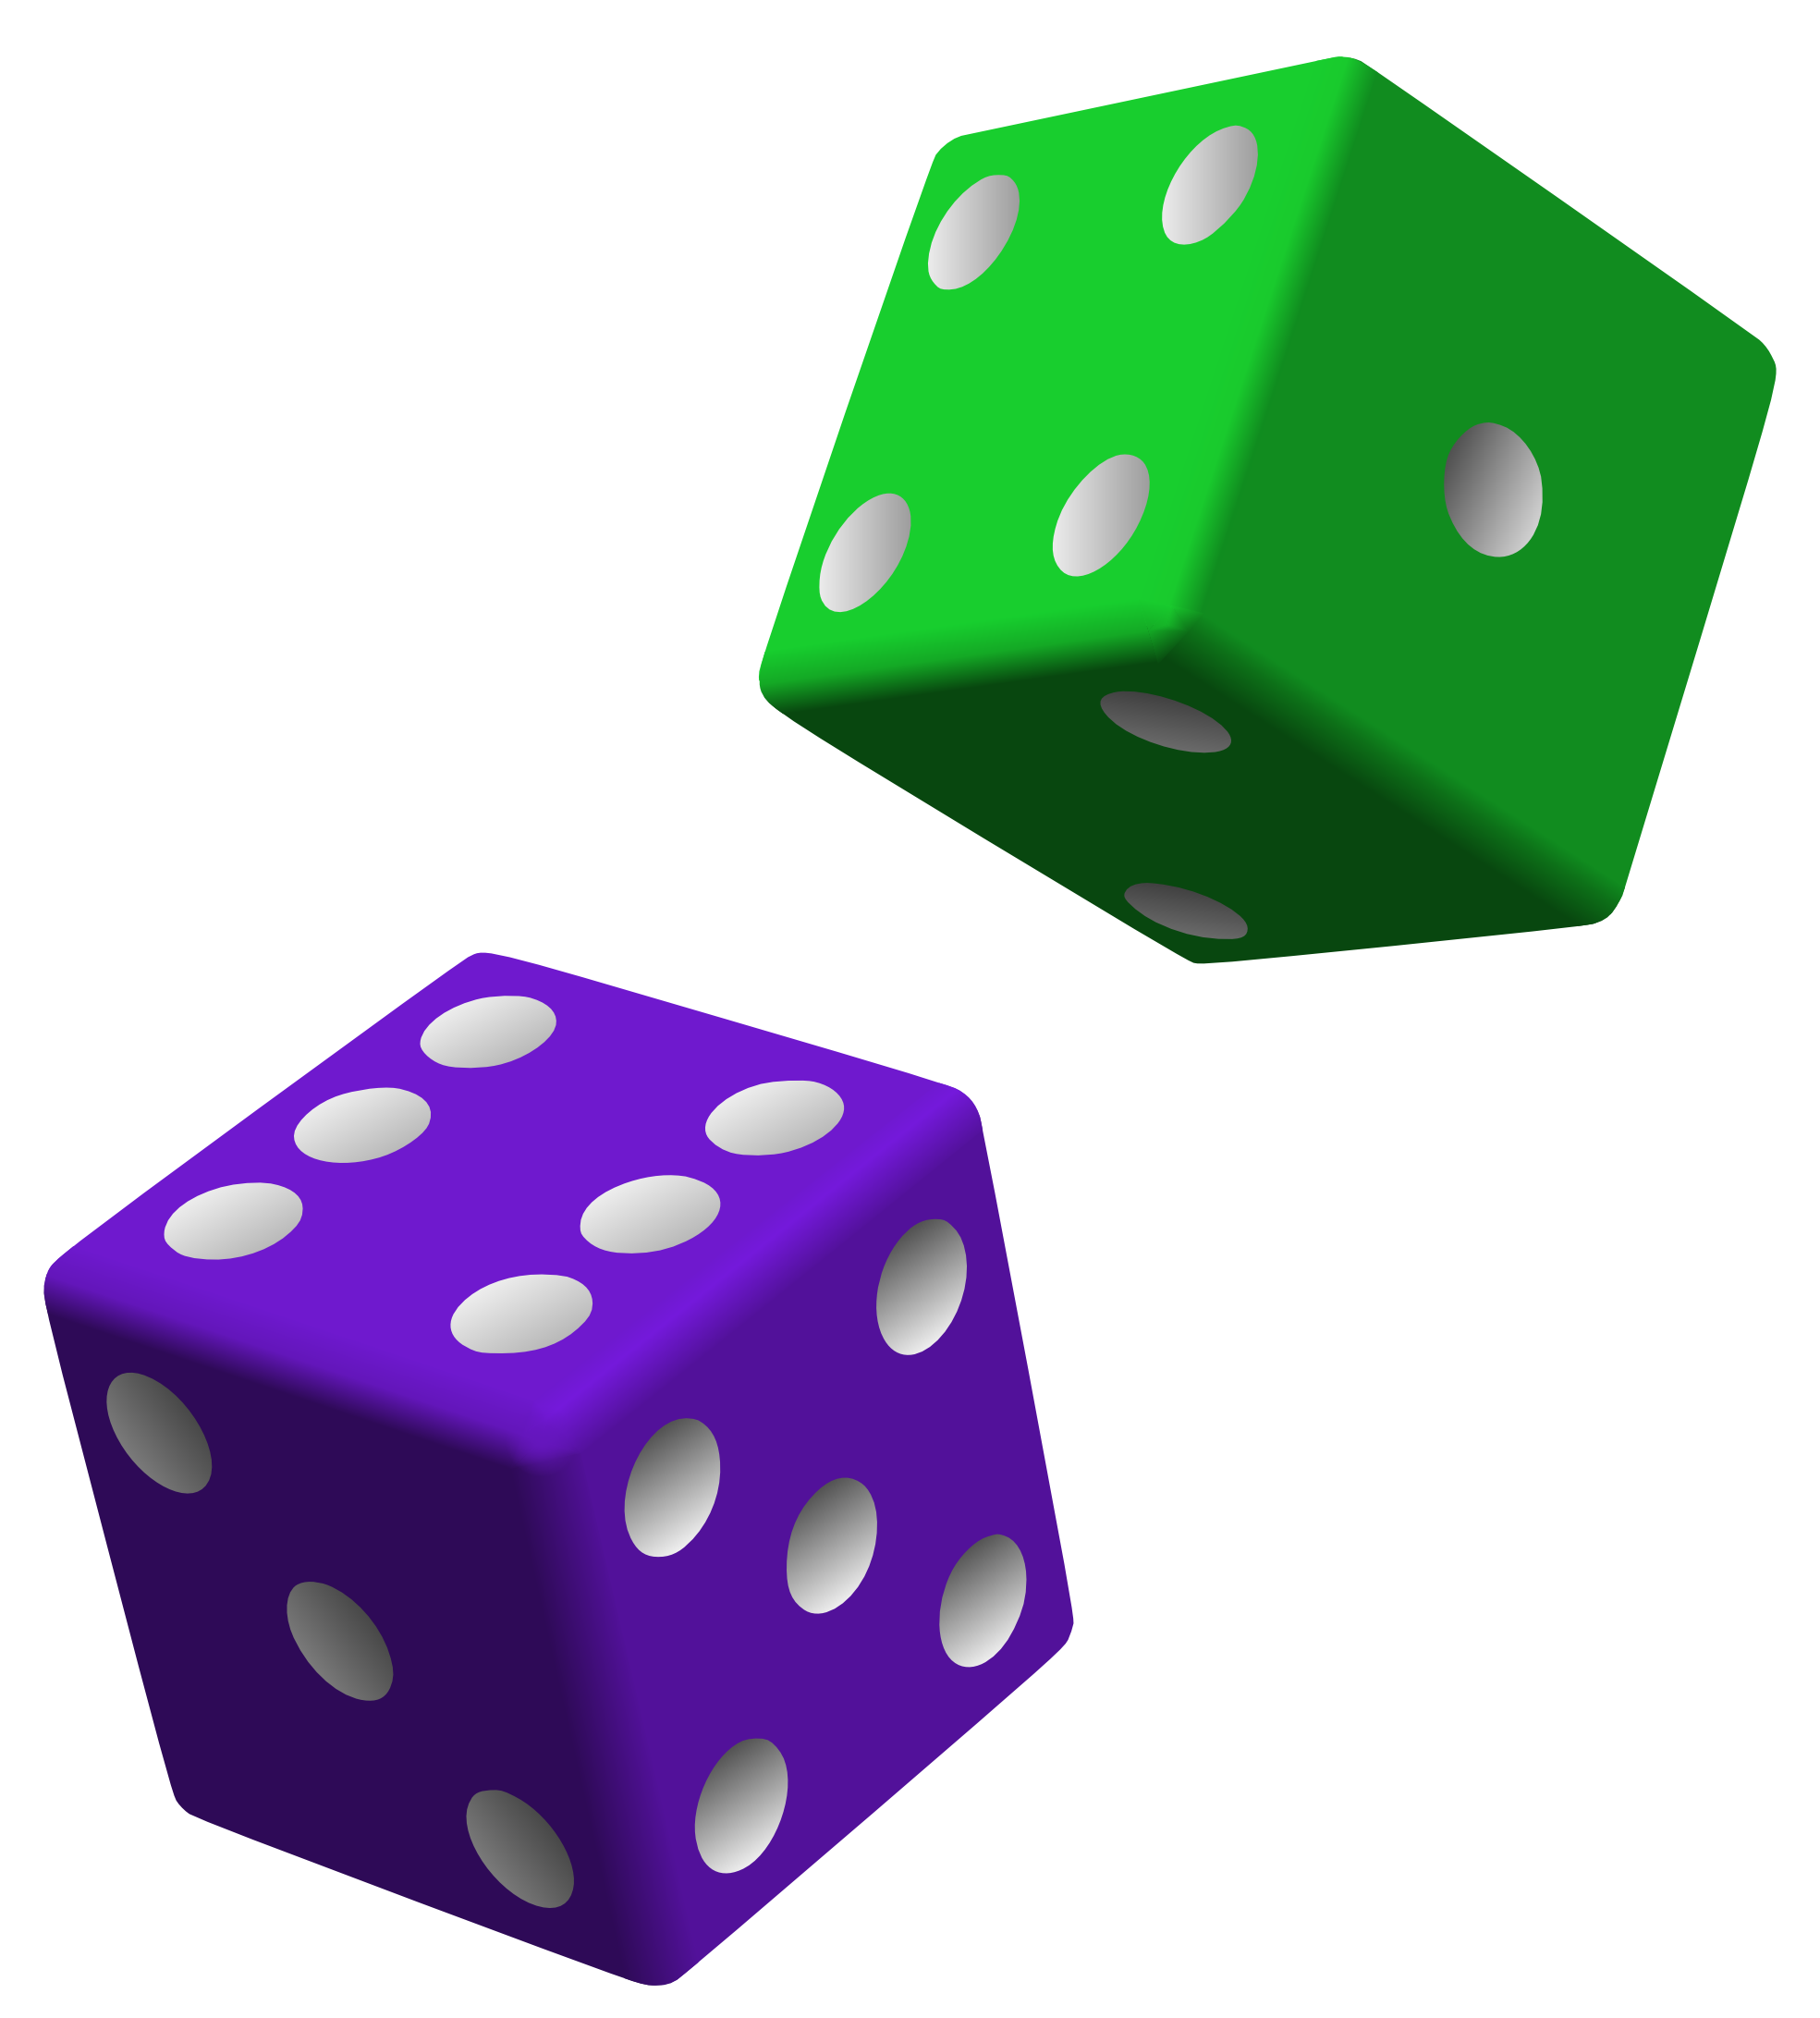 Dice this clip art is derived free clipart images